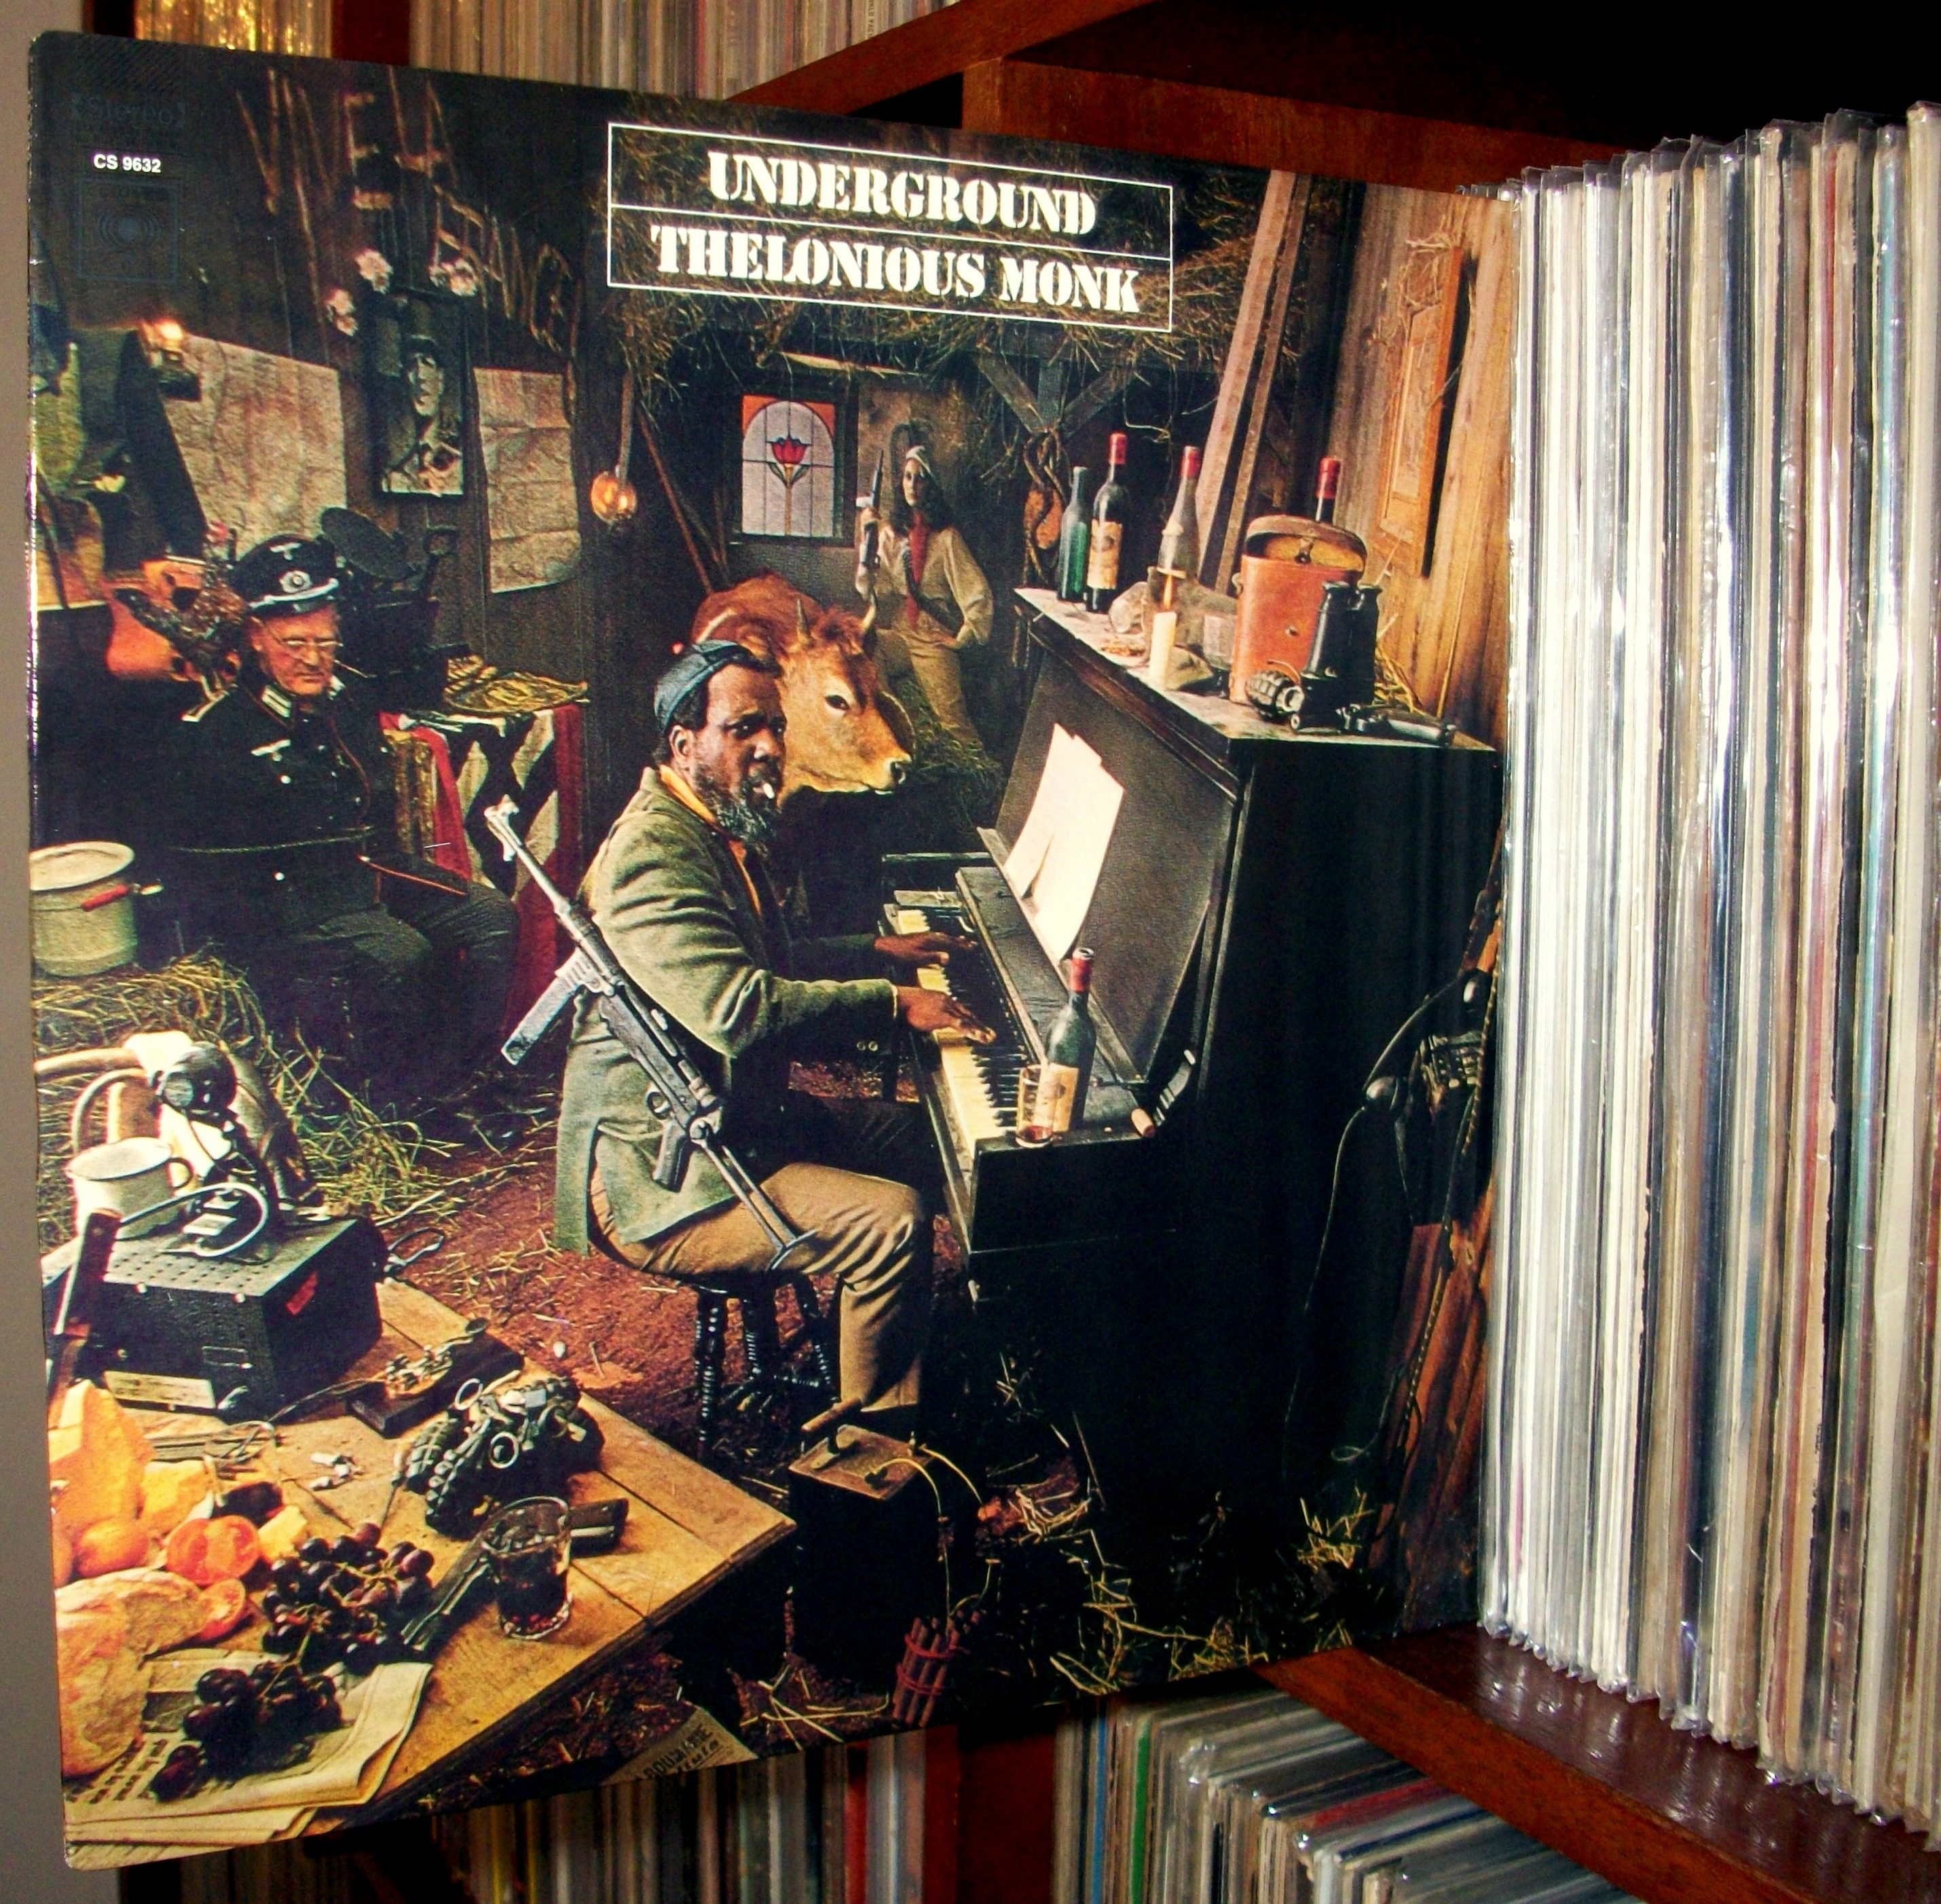 Thelonious Monk The Complete Blue Note Recordings Of Thelonious Monk